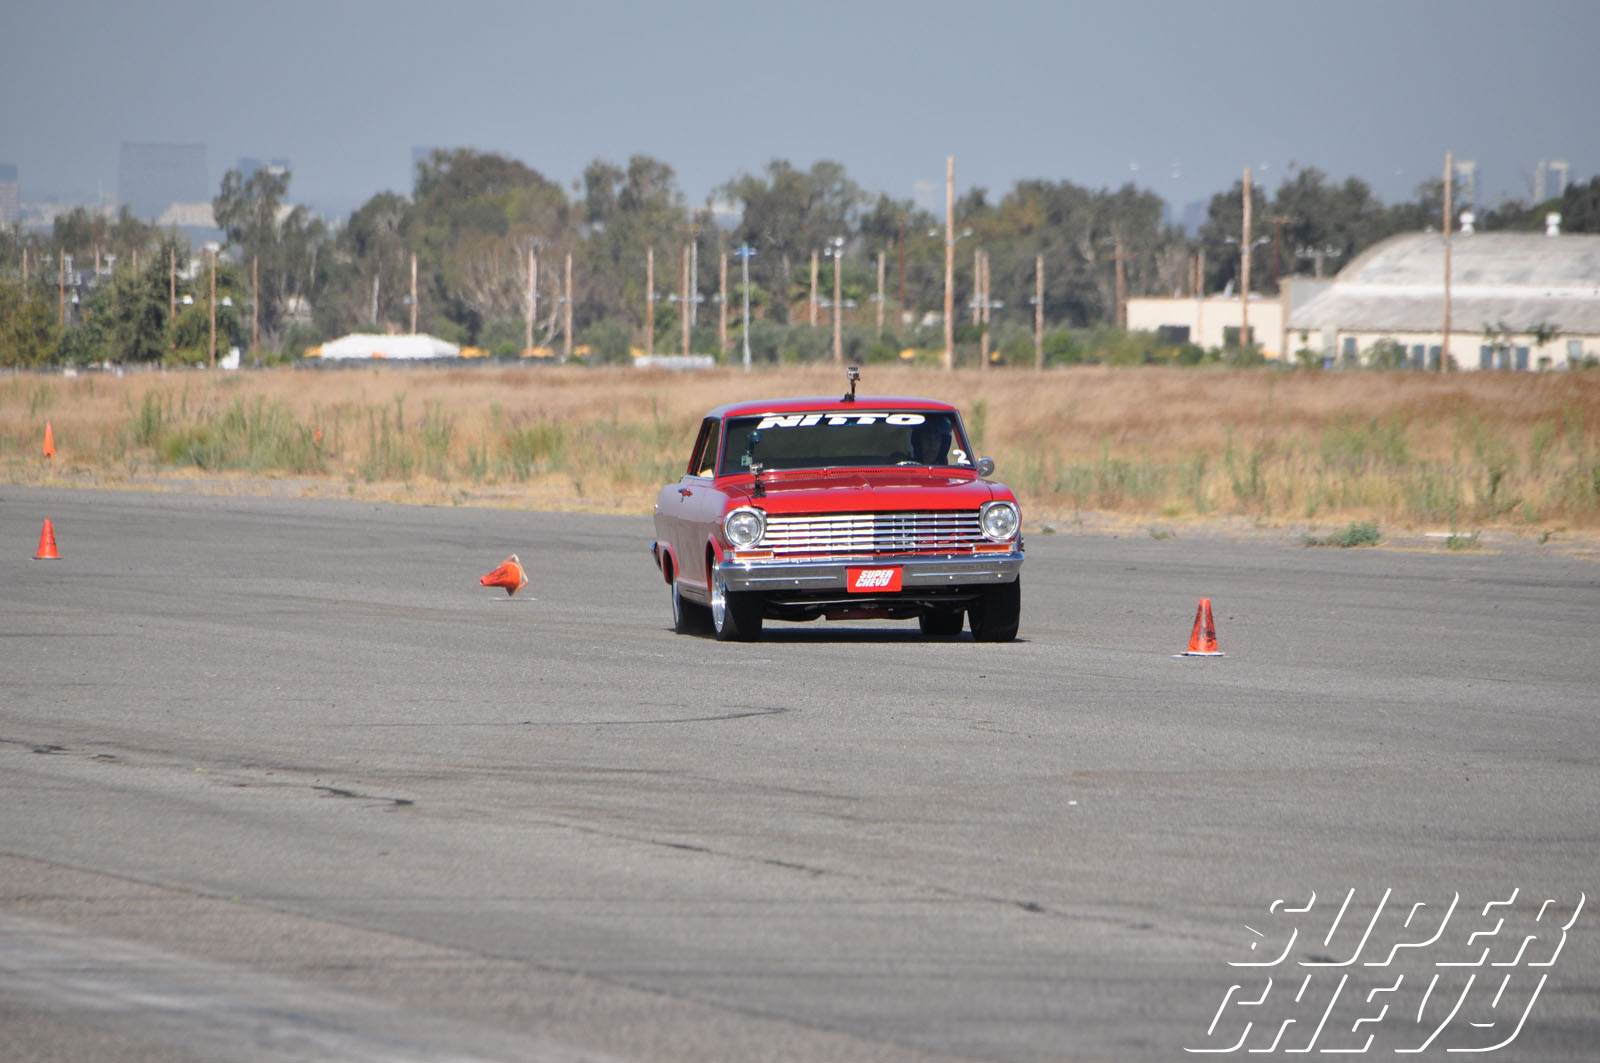 Sucp_1009_020_o 2010_super_chevy_suspension_and_handling challenge Event